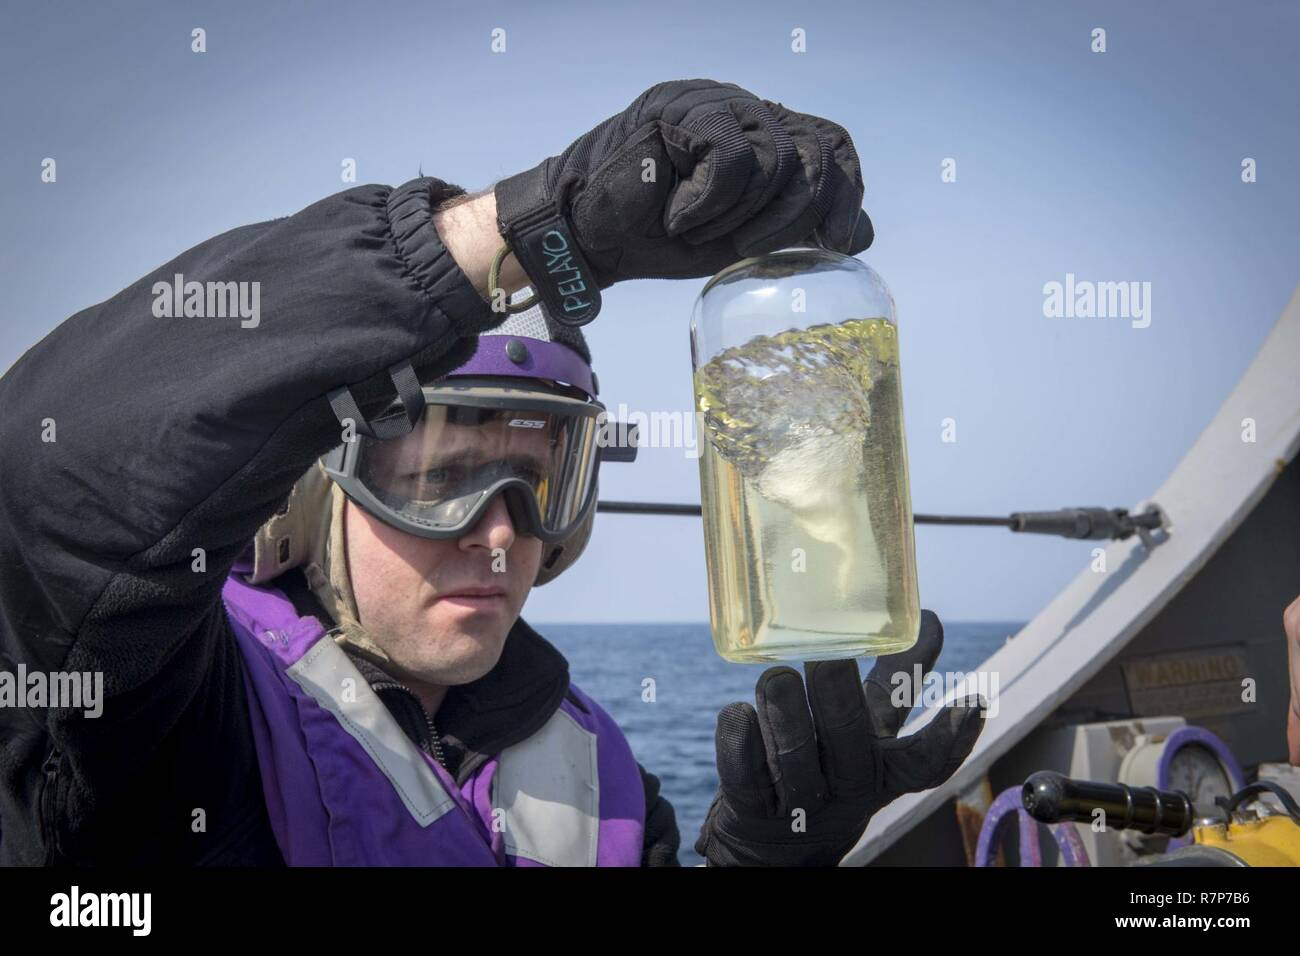 WATERS EAST OF THE KOREAN PENINSULA (March 22, 2017) Gas Turbine Systems Technician (Mechanical) 2nd Class Taylor Poling, assigned to the Arleigh Burke-class guided-missile destroyer USS Stethem (DDG 63), checks JP-5 fuel for impurities prior to a passenger transport with the Nimitz-class aircraft carrier USS Carl Vinson (CVN 70) during Foal Eagle (FE) 17. FE 17 is a series of annual training events designed to increase readiness to defend the ROK, protect the region, and maintain stability in the Korean Peninsula. - Stock Image